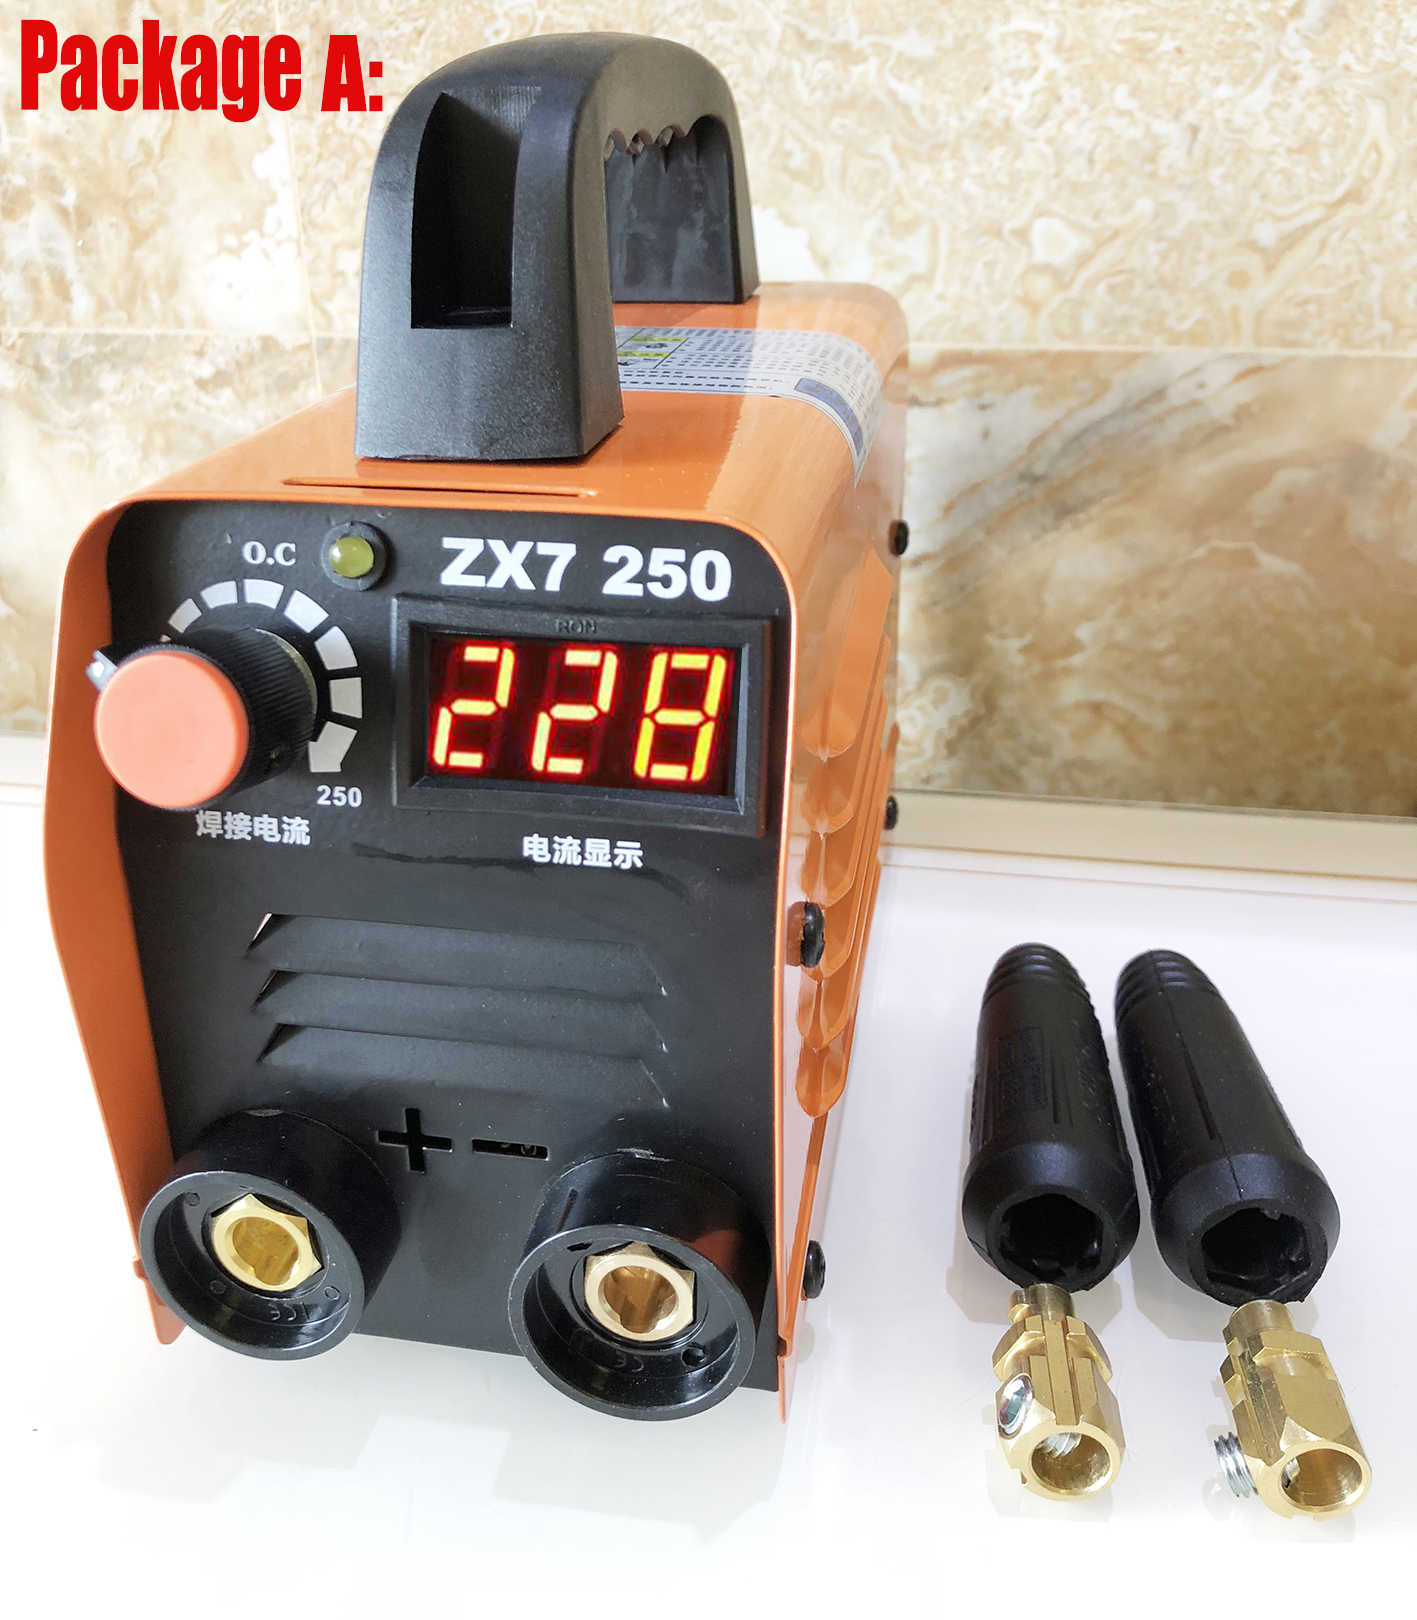 US $30 4 5% OFF|For free 250A 110 250V Compact Mini MMA Welder Inverter ARC  Welding Machine Stick Welder-in Arc Welders from Tools on Aliexpress com |